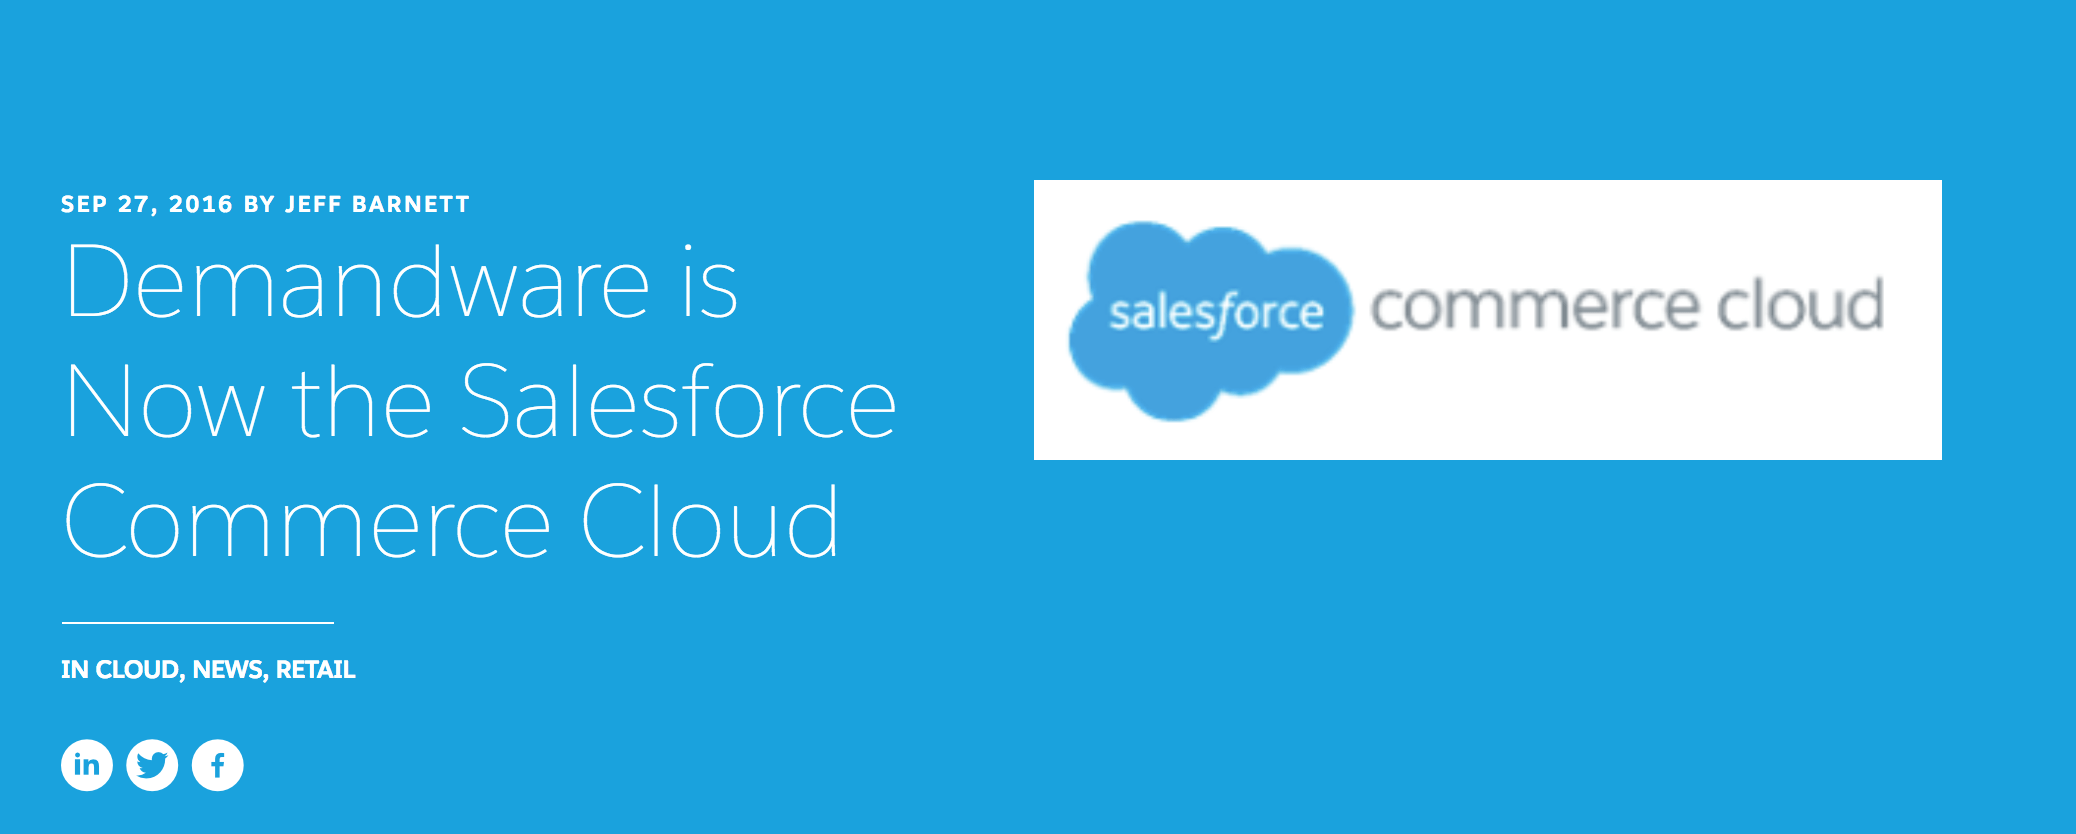 How Salesforce Built a $13 Billion Empire from a CRM [The